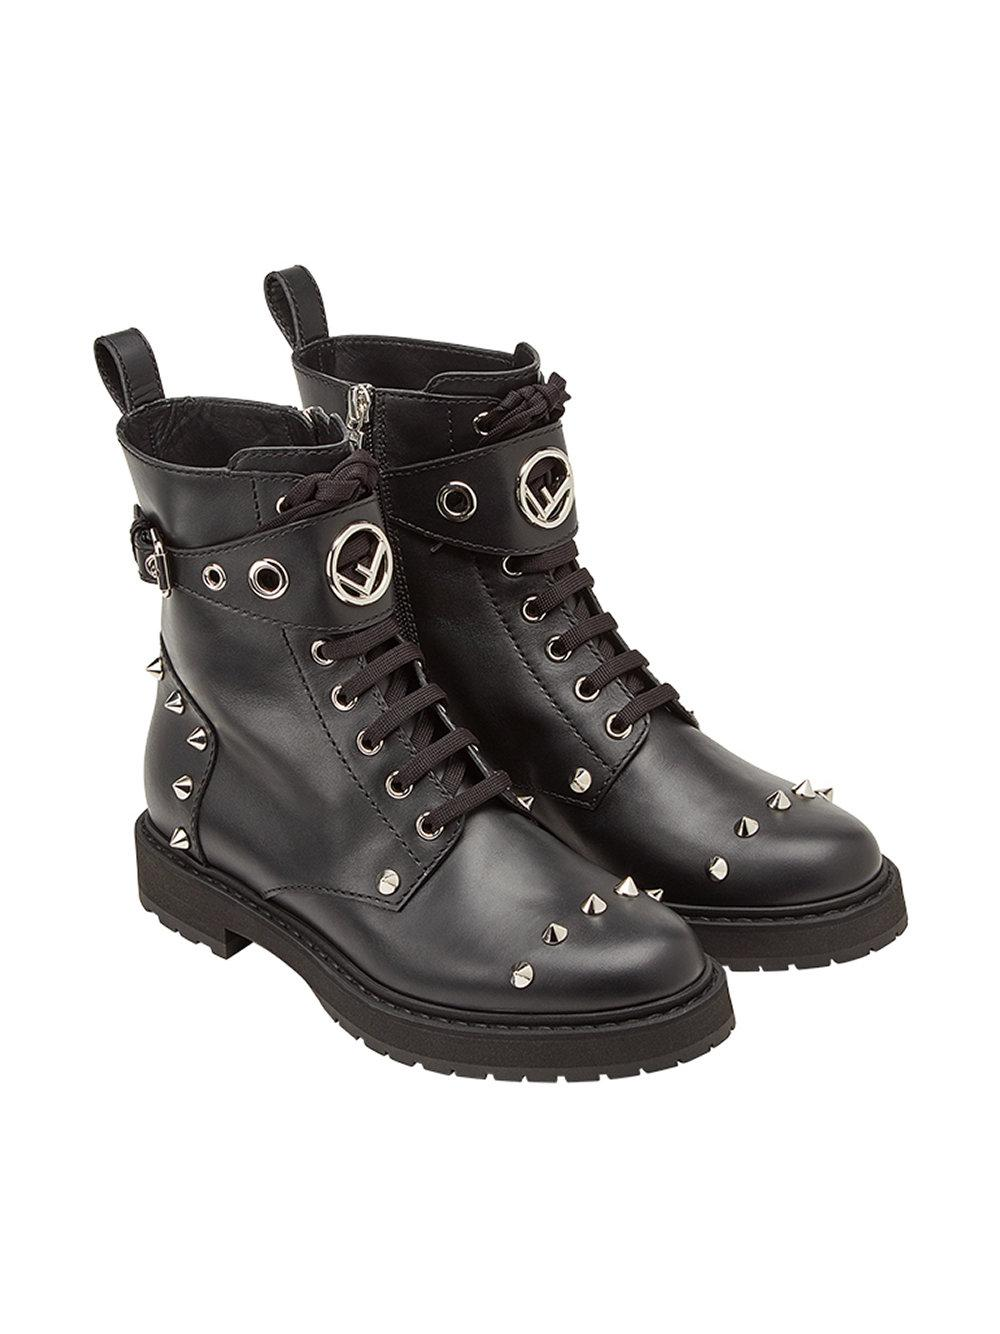 lace-up studded boots - Black Fendi